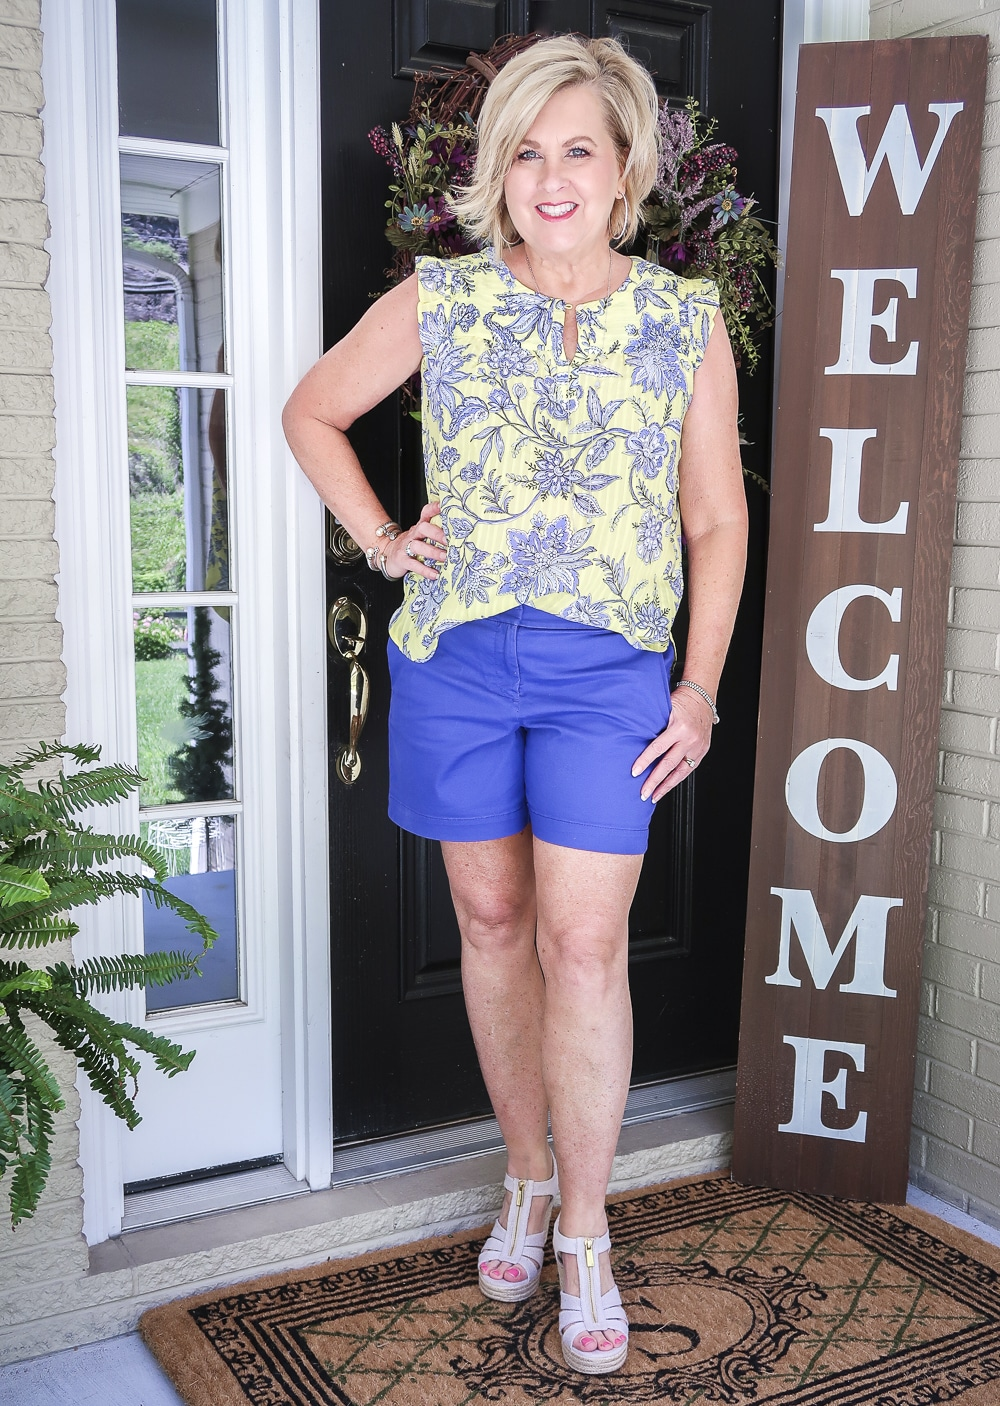 Fashion Blogger 50 Is Not Old wearing a yellow top with a blue floral design, blue shorts, and platform espadrille wedge shoes by Micheal Kors